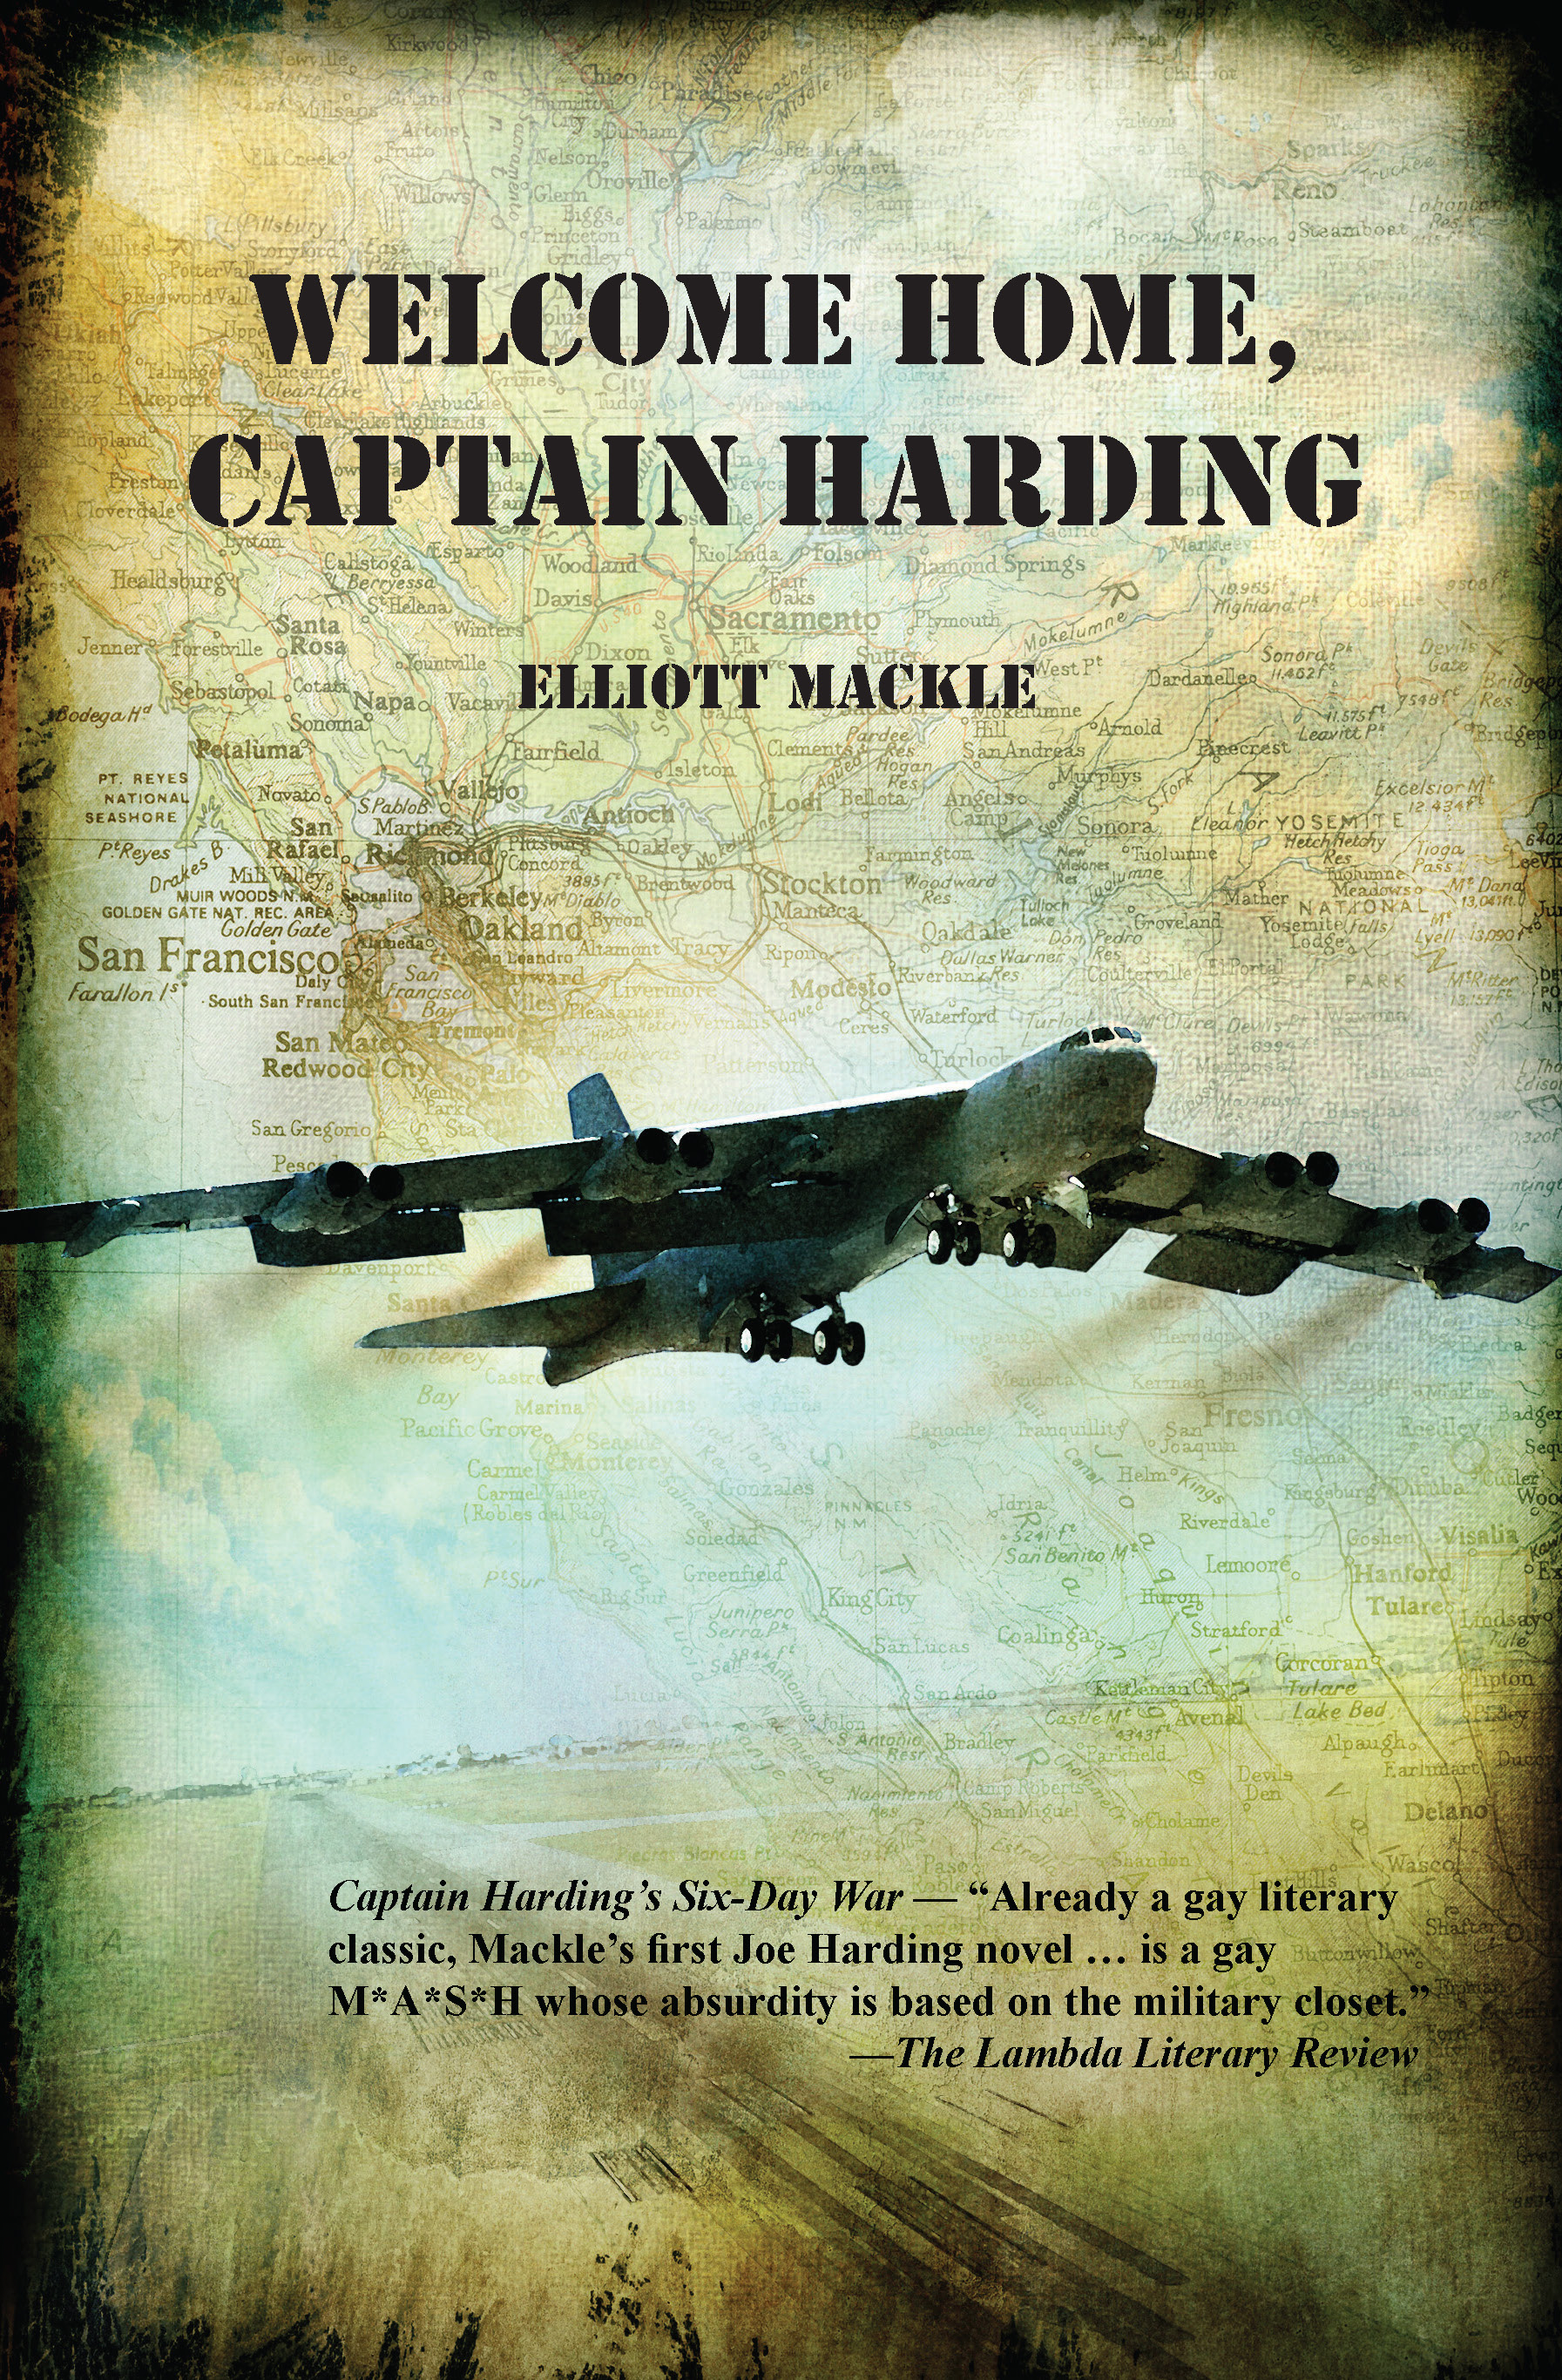 Welcome Home, Captain Harding by Elliot Mackie